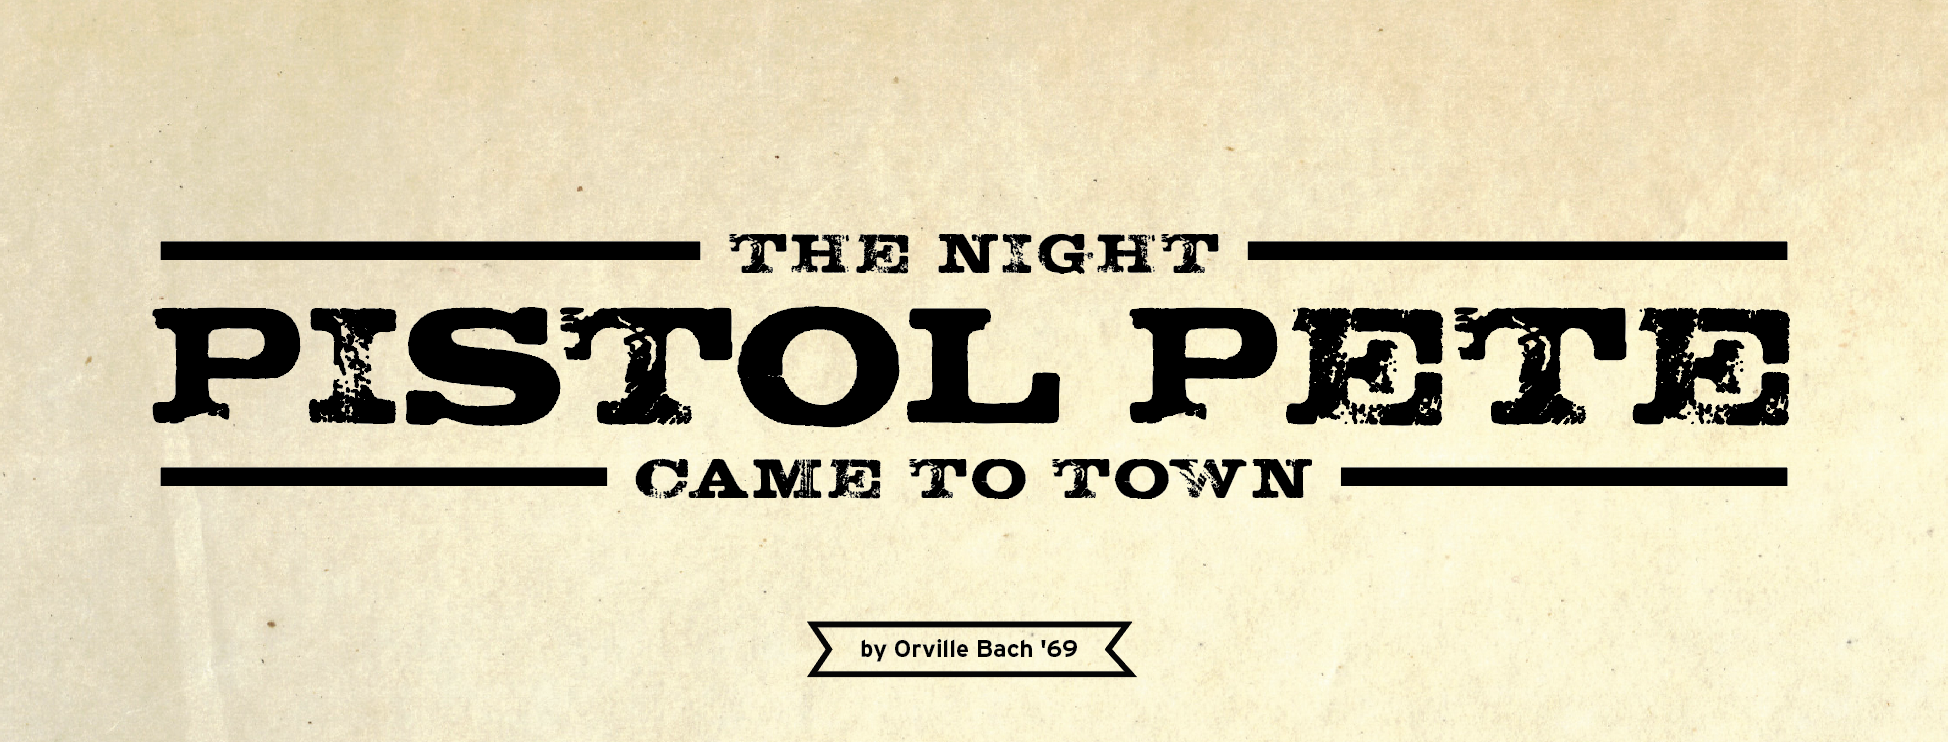 The Night Pistol Pete Came to Town by Orville Bach '69